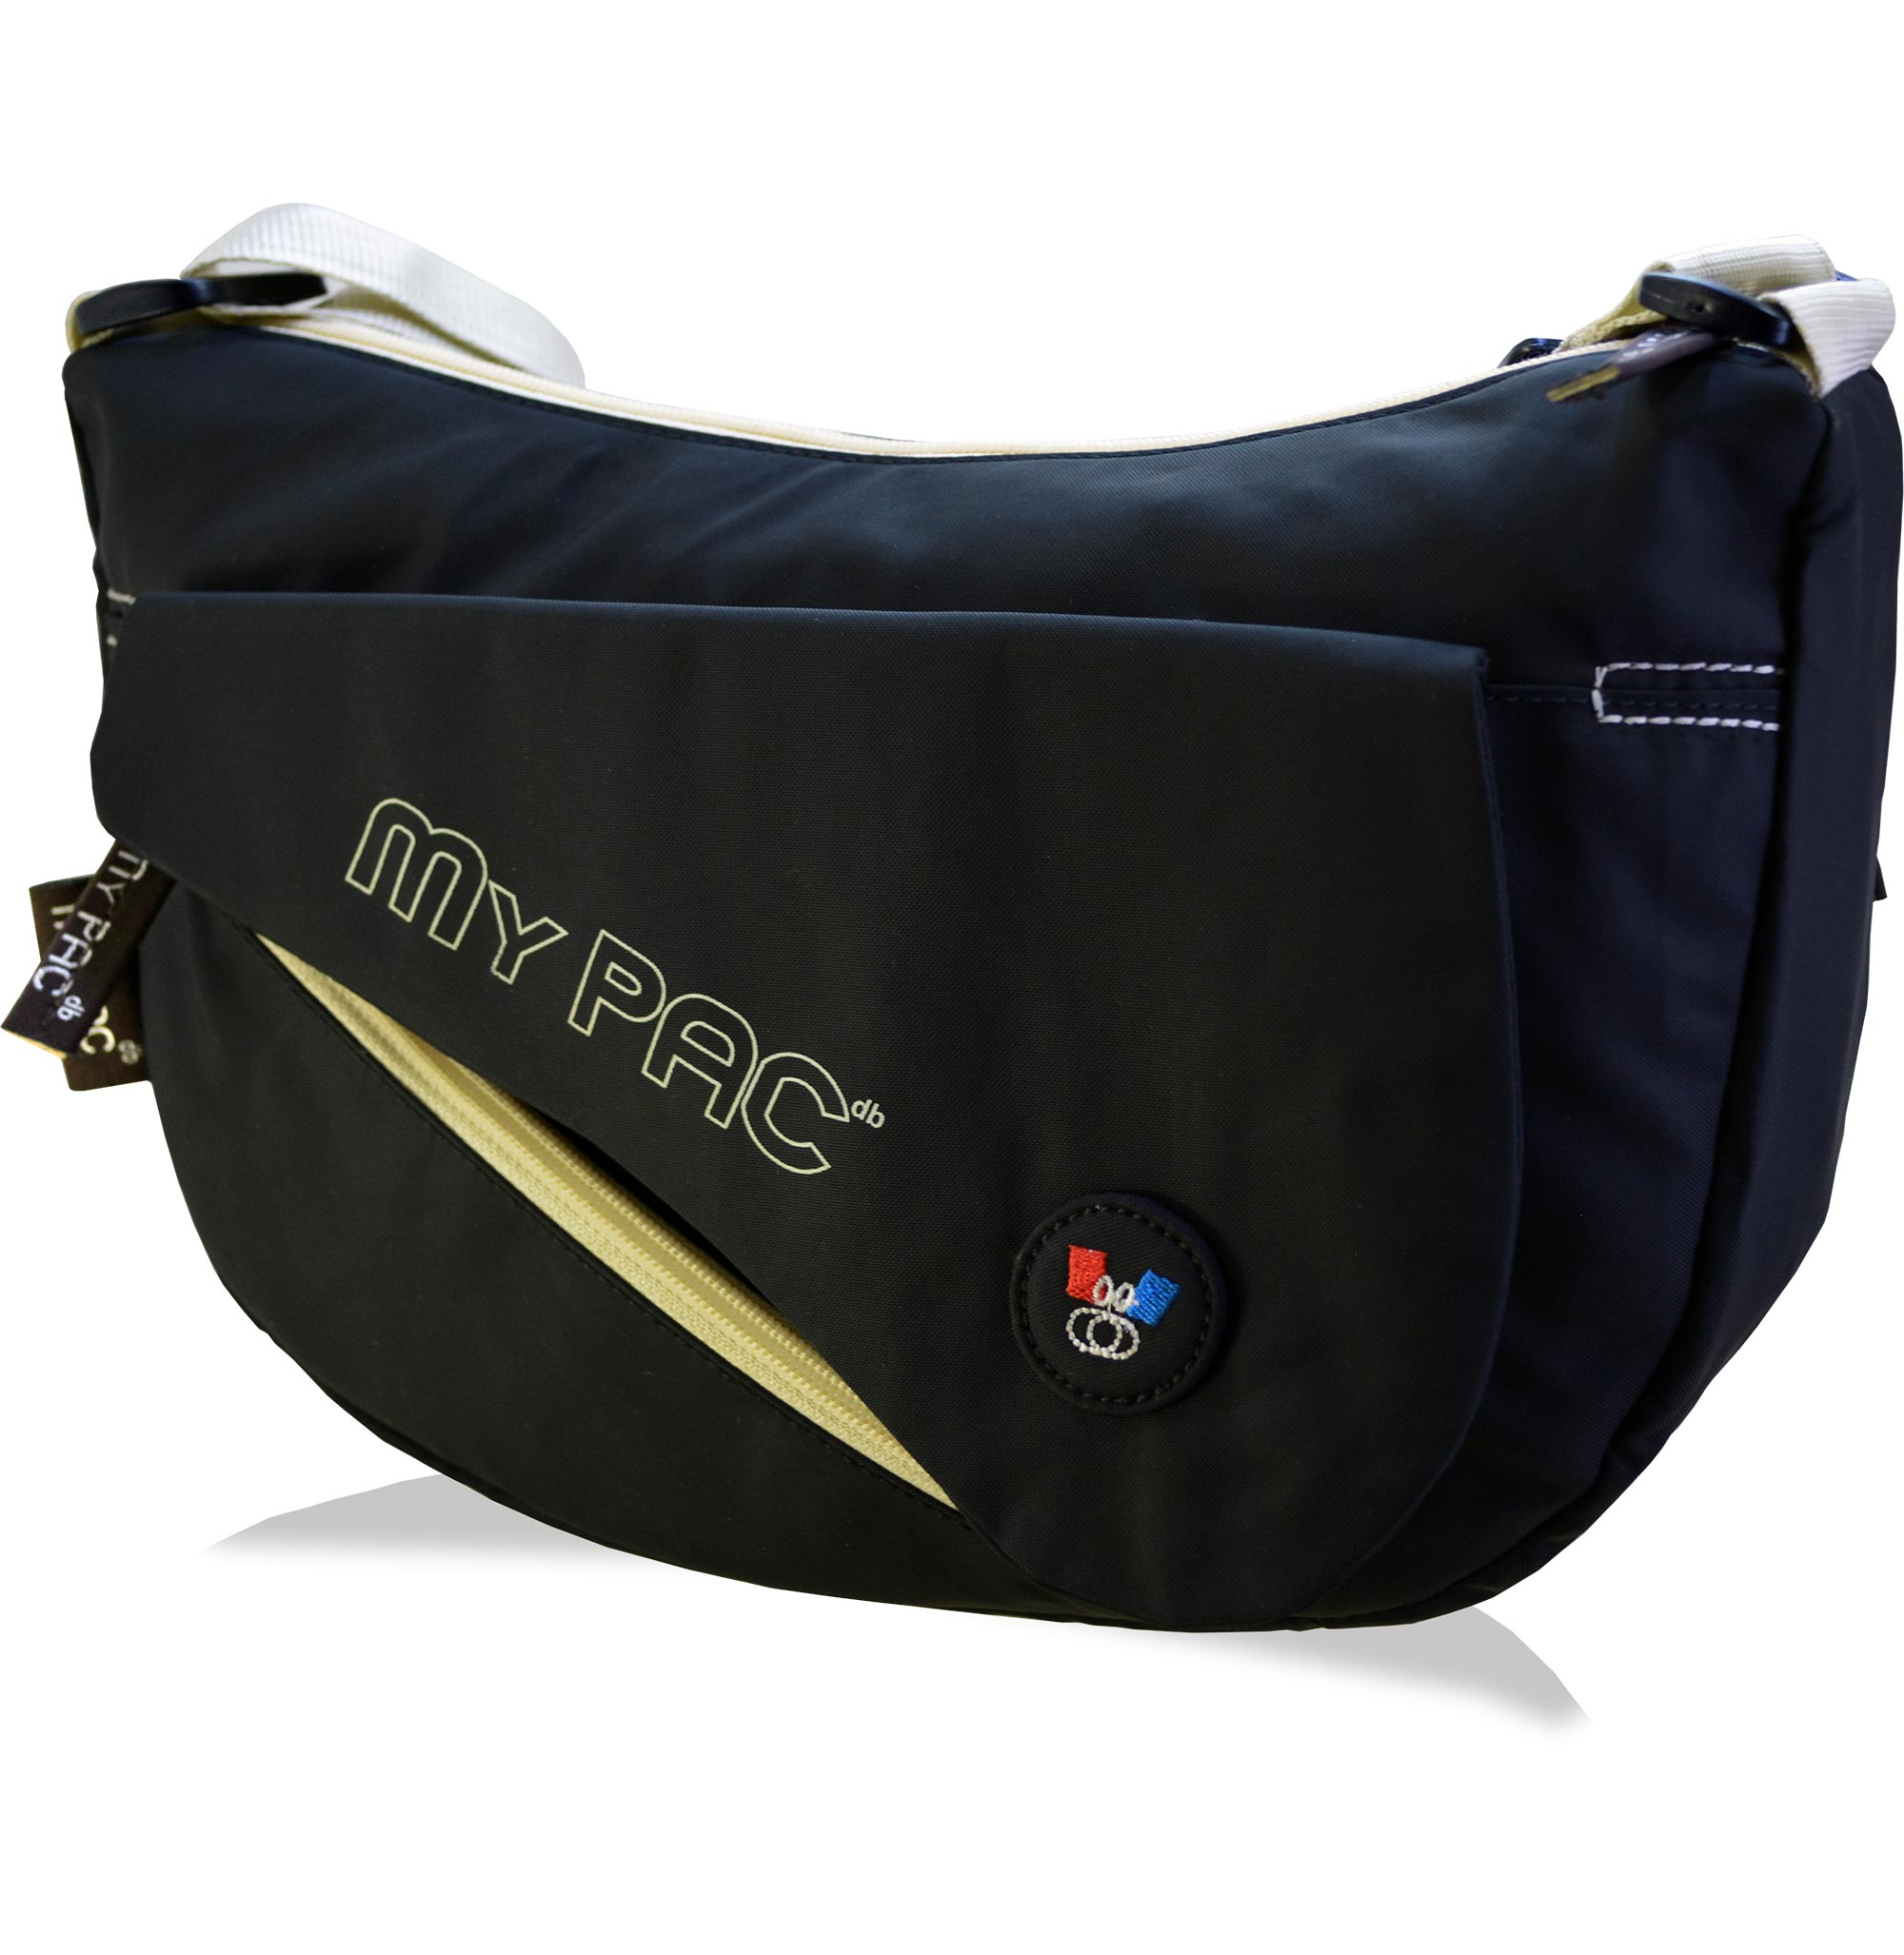 mypac-ViVaa Polyester Sling bag for girls black C11565-1